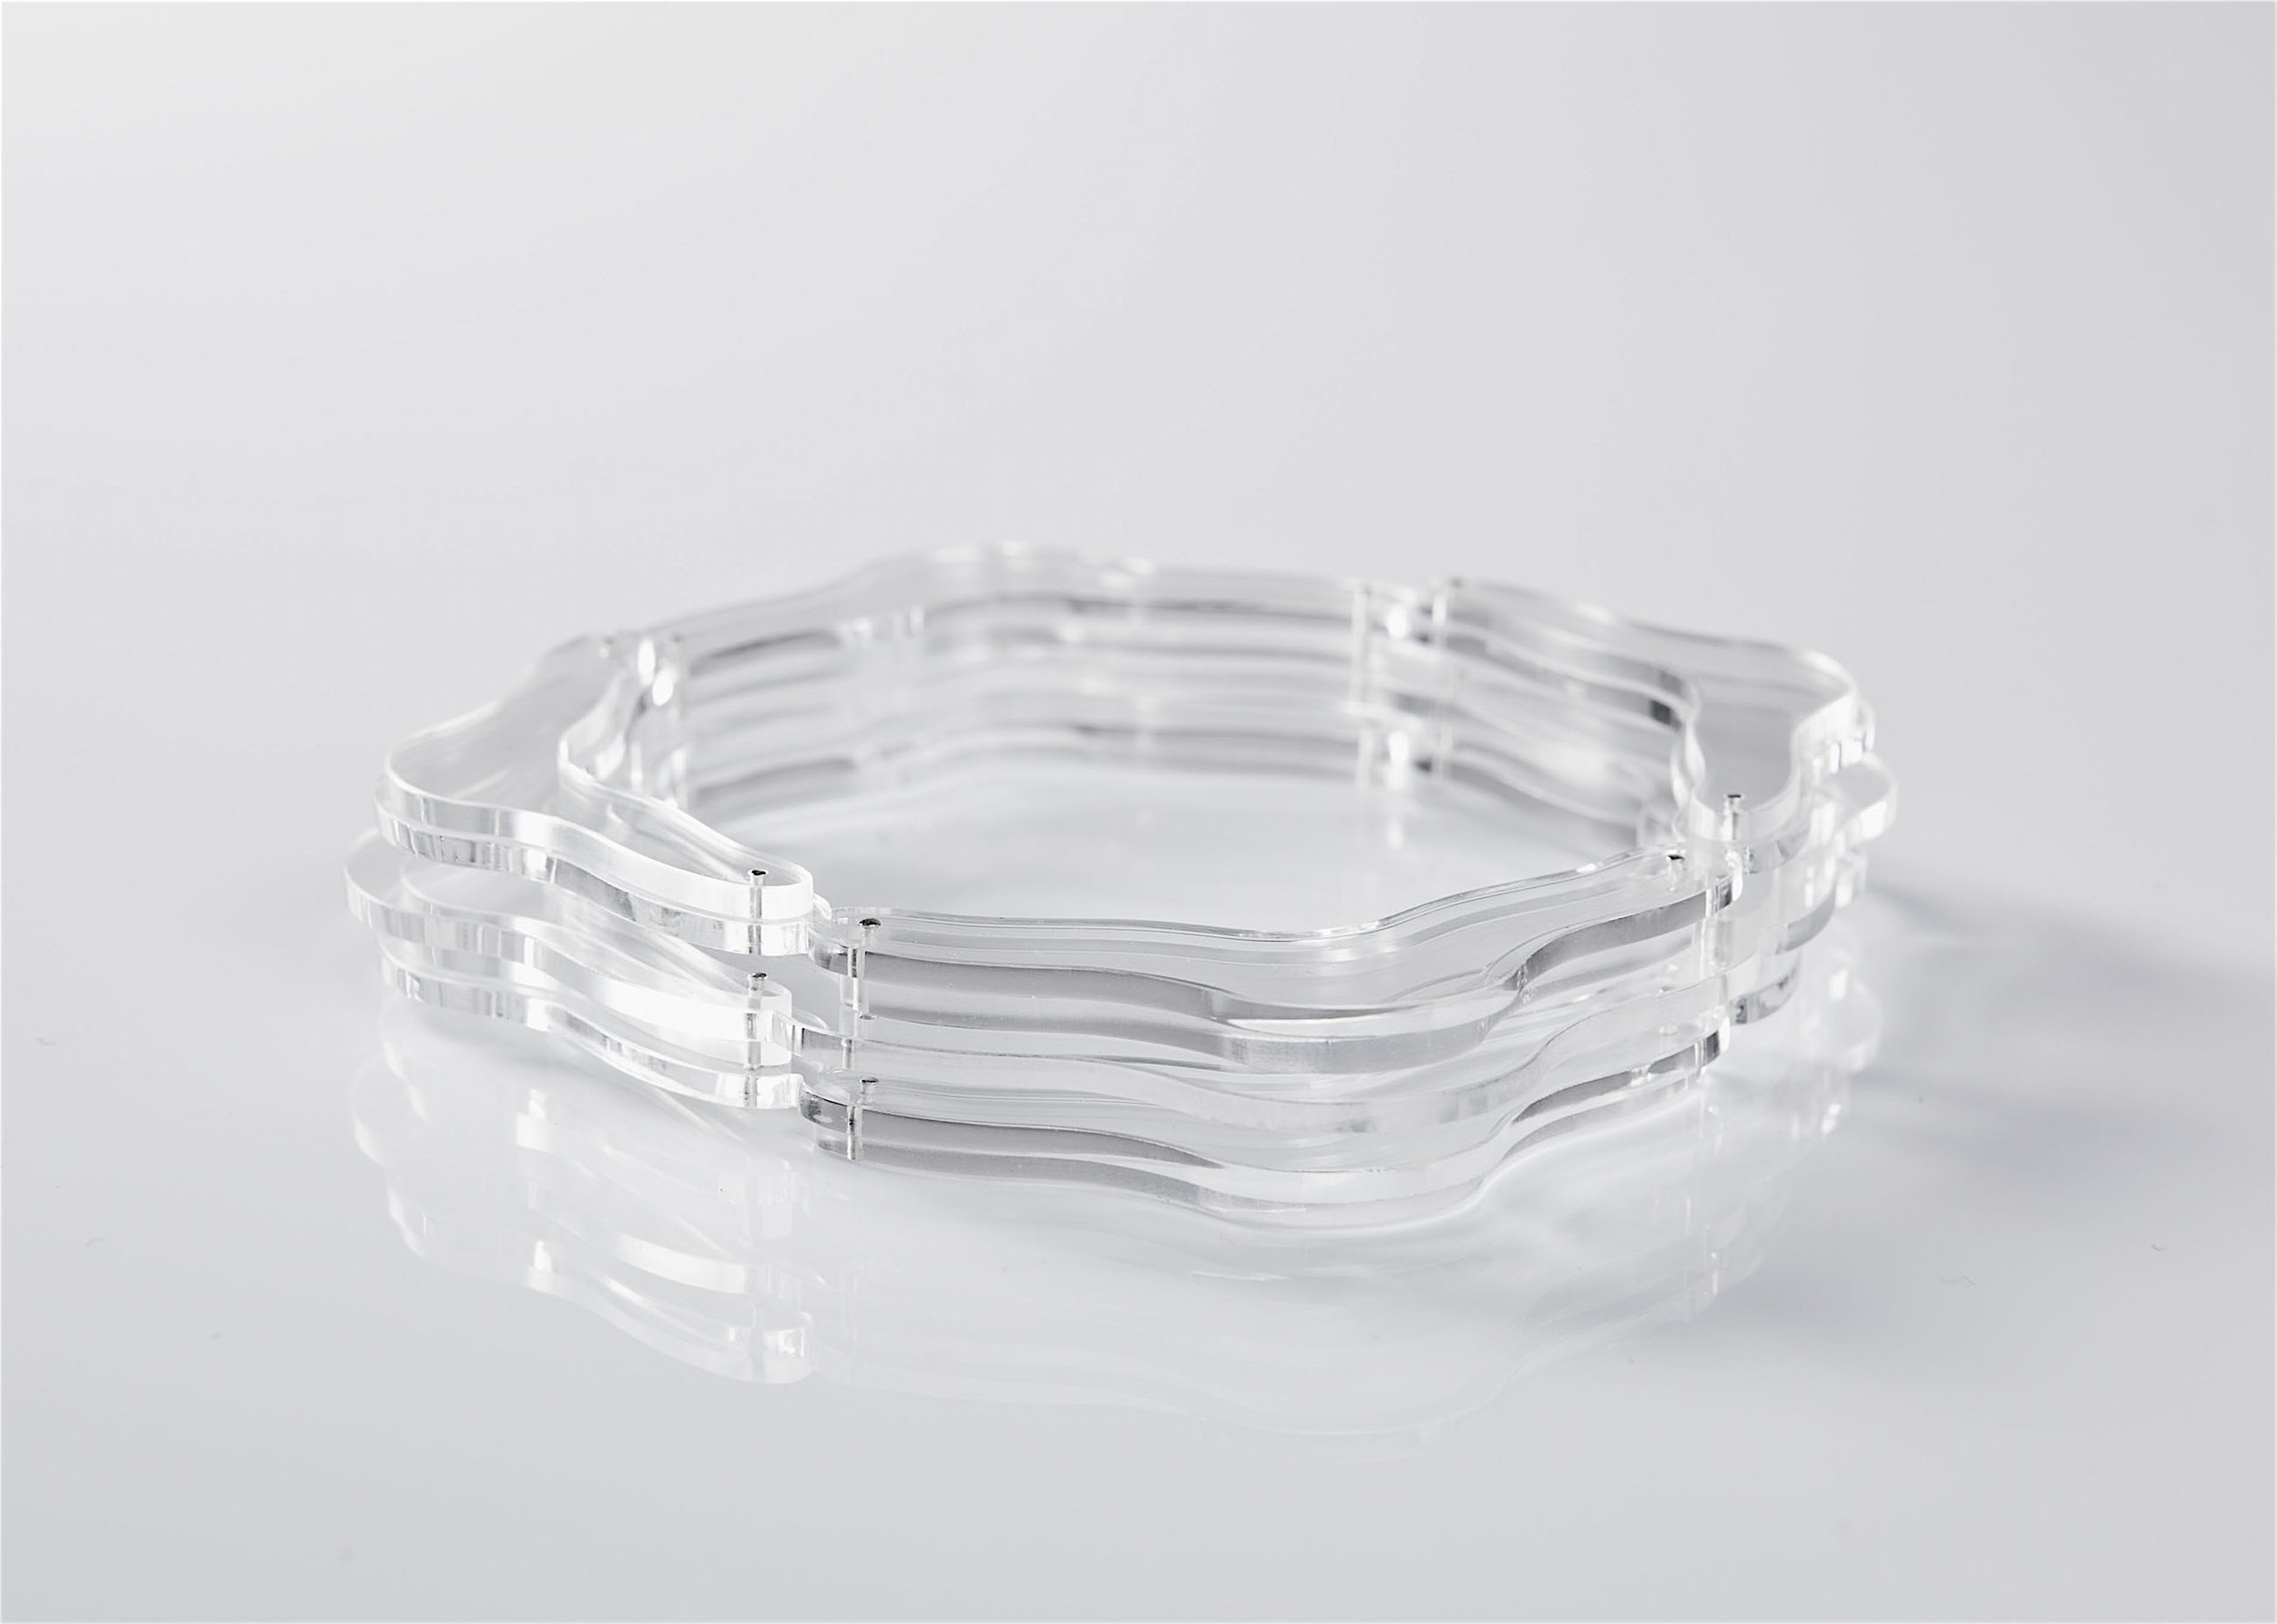 ghost bracelet transparent layers ribited silver.jpg